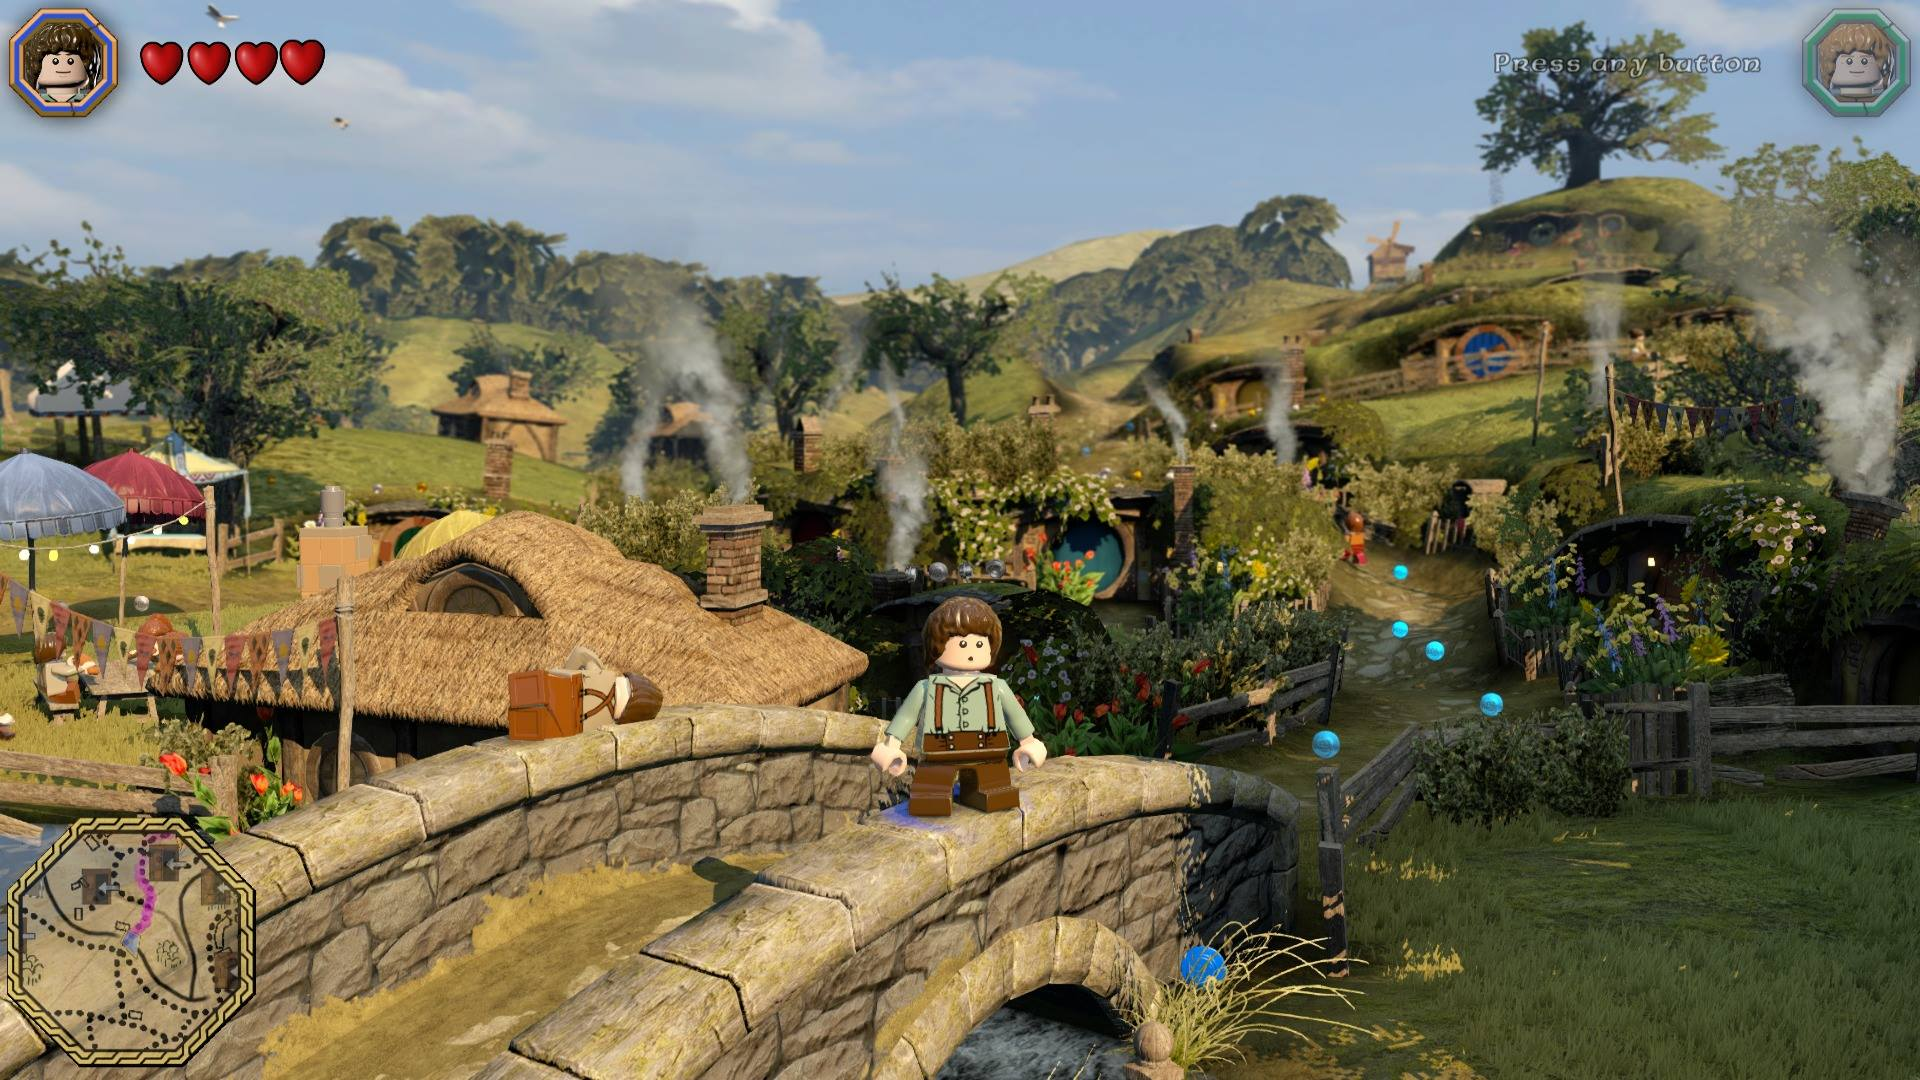 Lego The Hobbit Review Travellers Treasure or Witless Worm Video 1920x1080